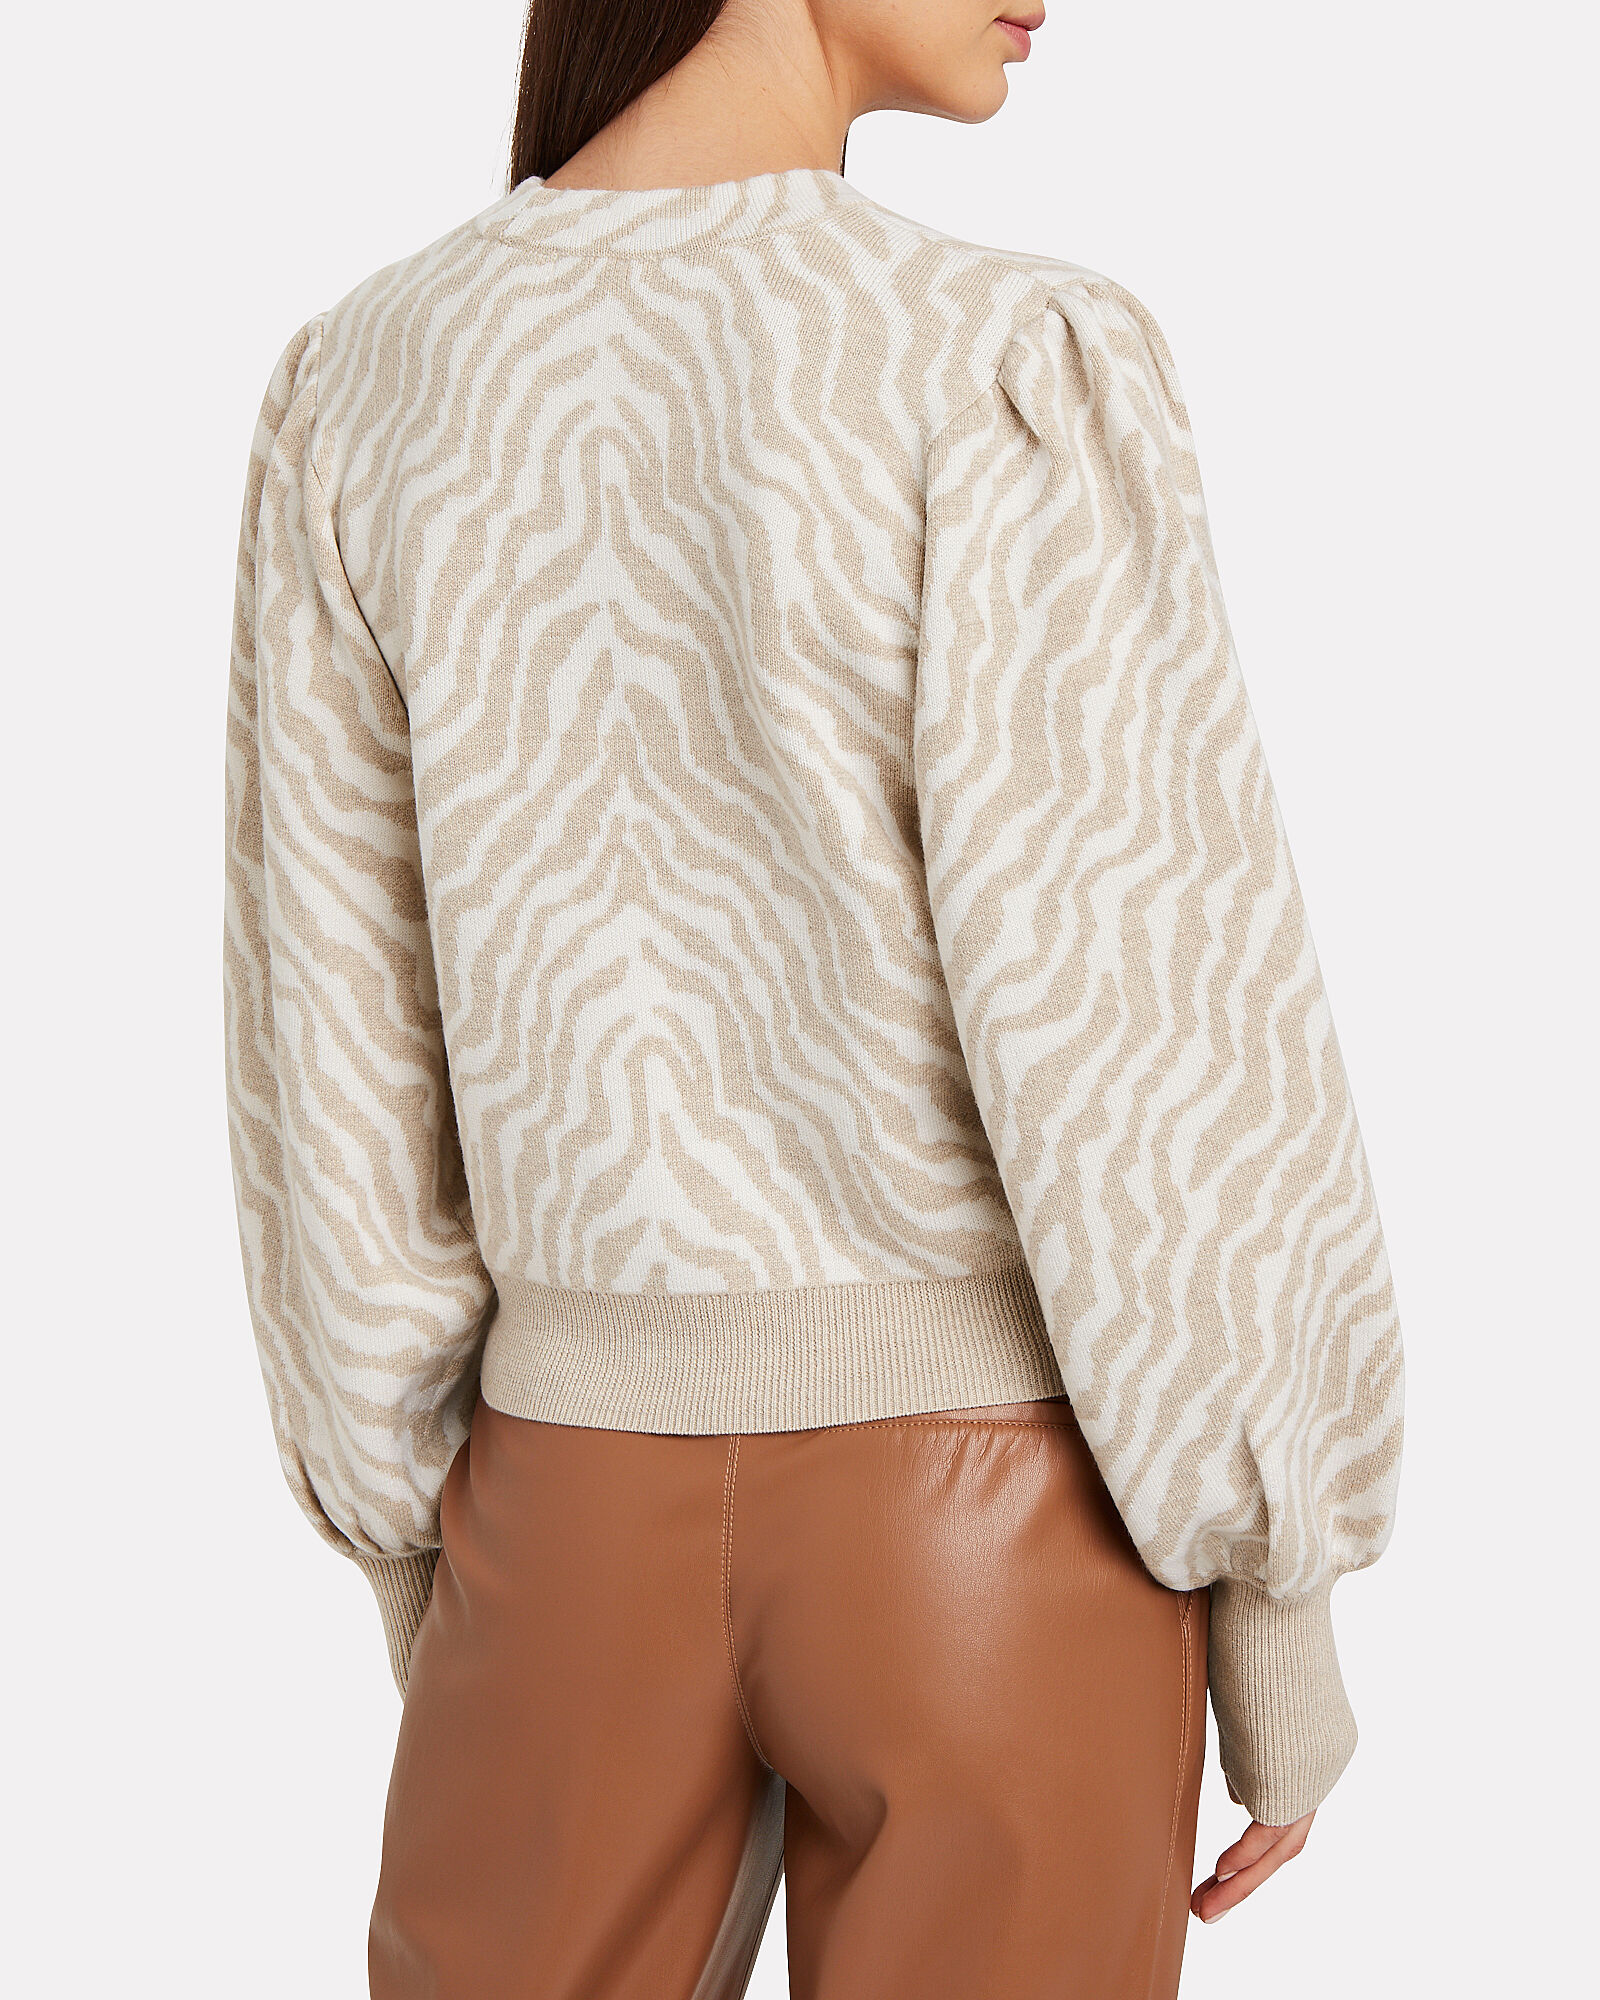 Cici Zebra Knit Wool Cardigan, CREAM/ZEBRA, hi-res